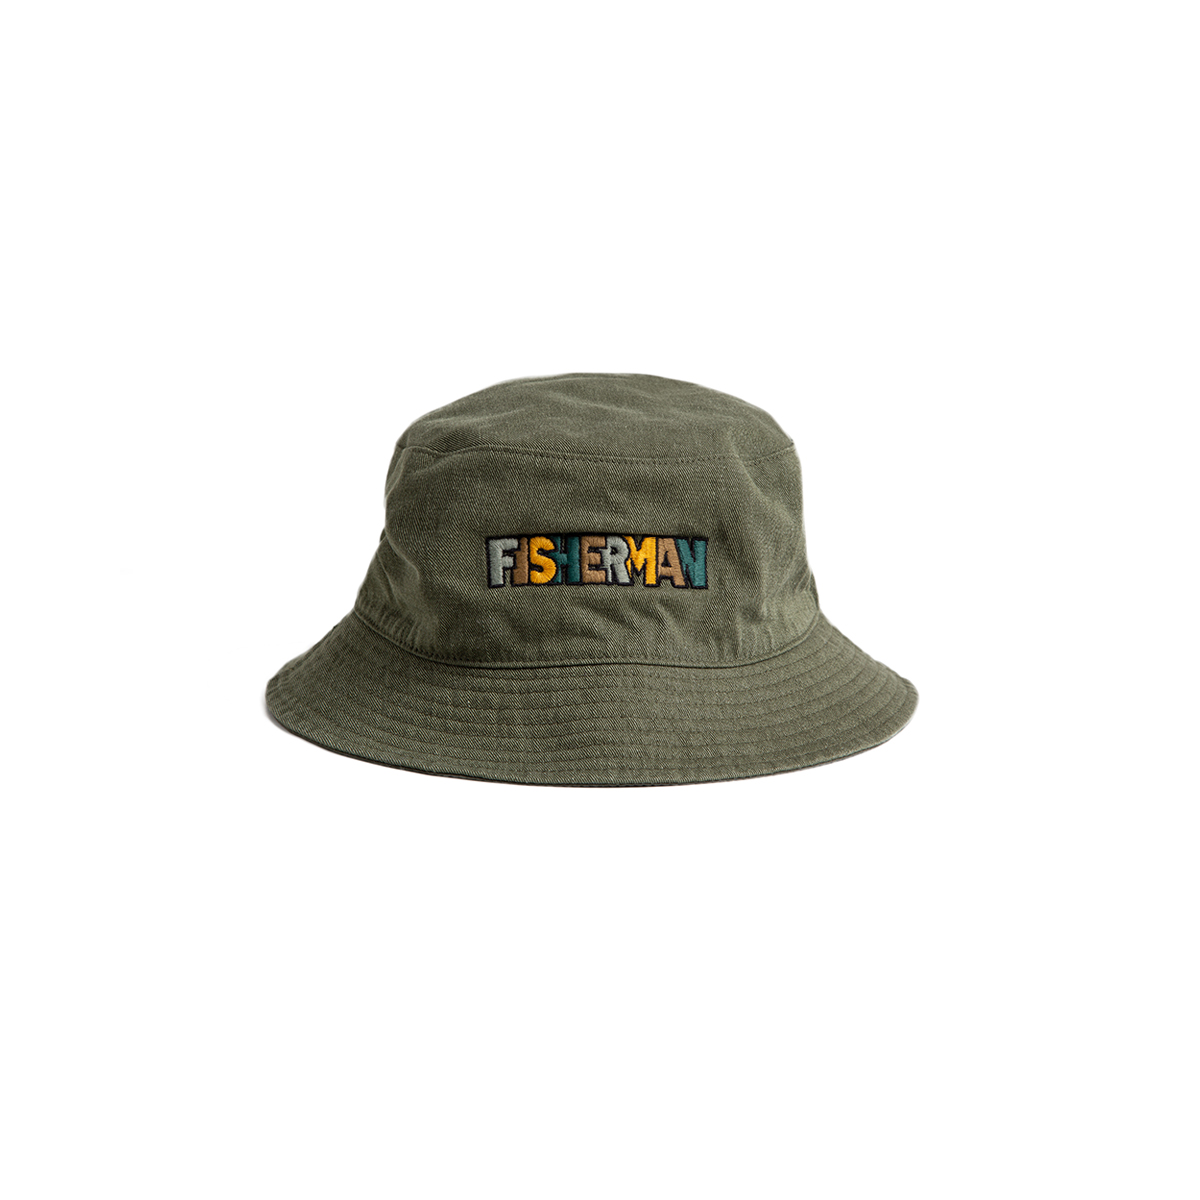 "Reversible Neelde Bucket_FISHERMAN ""KHAKI""자수가 촘촘히 들어간 버킷"